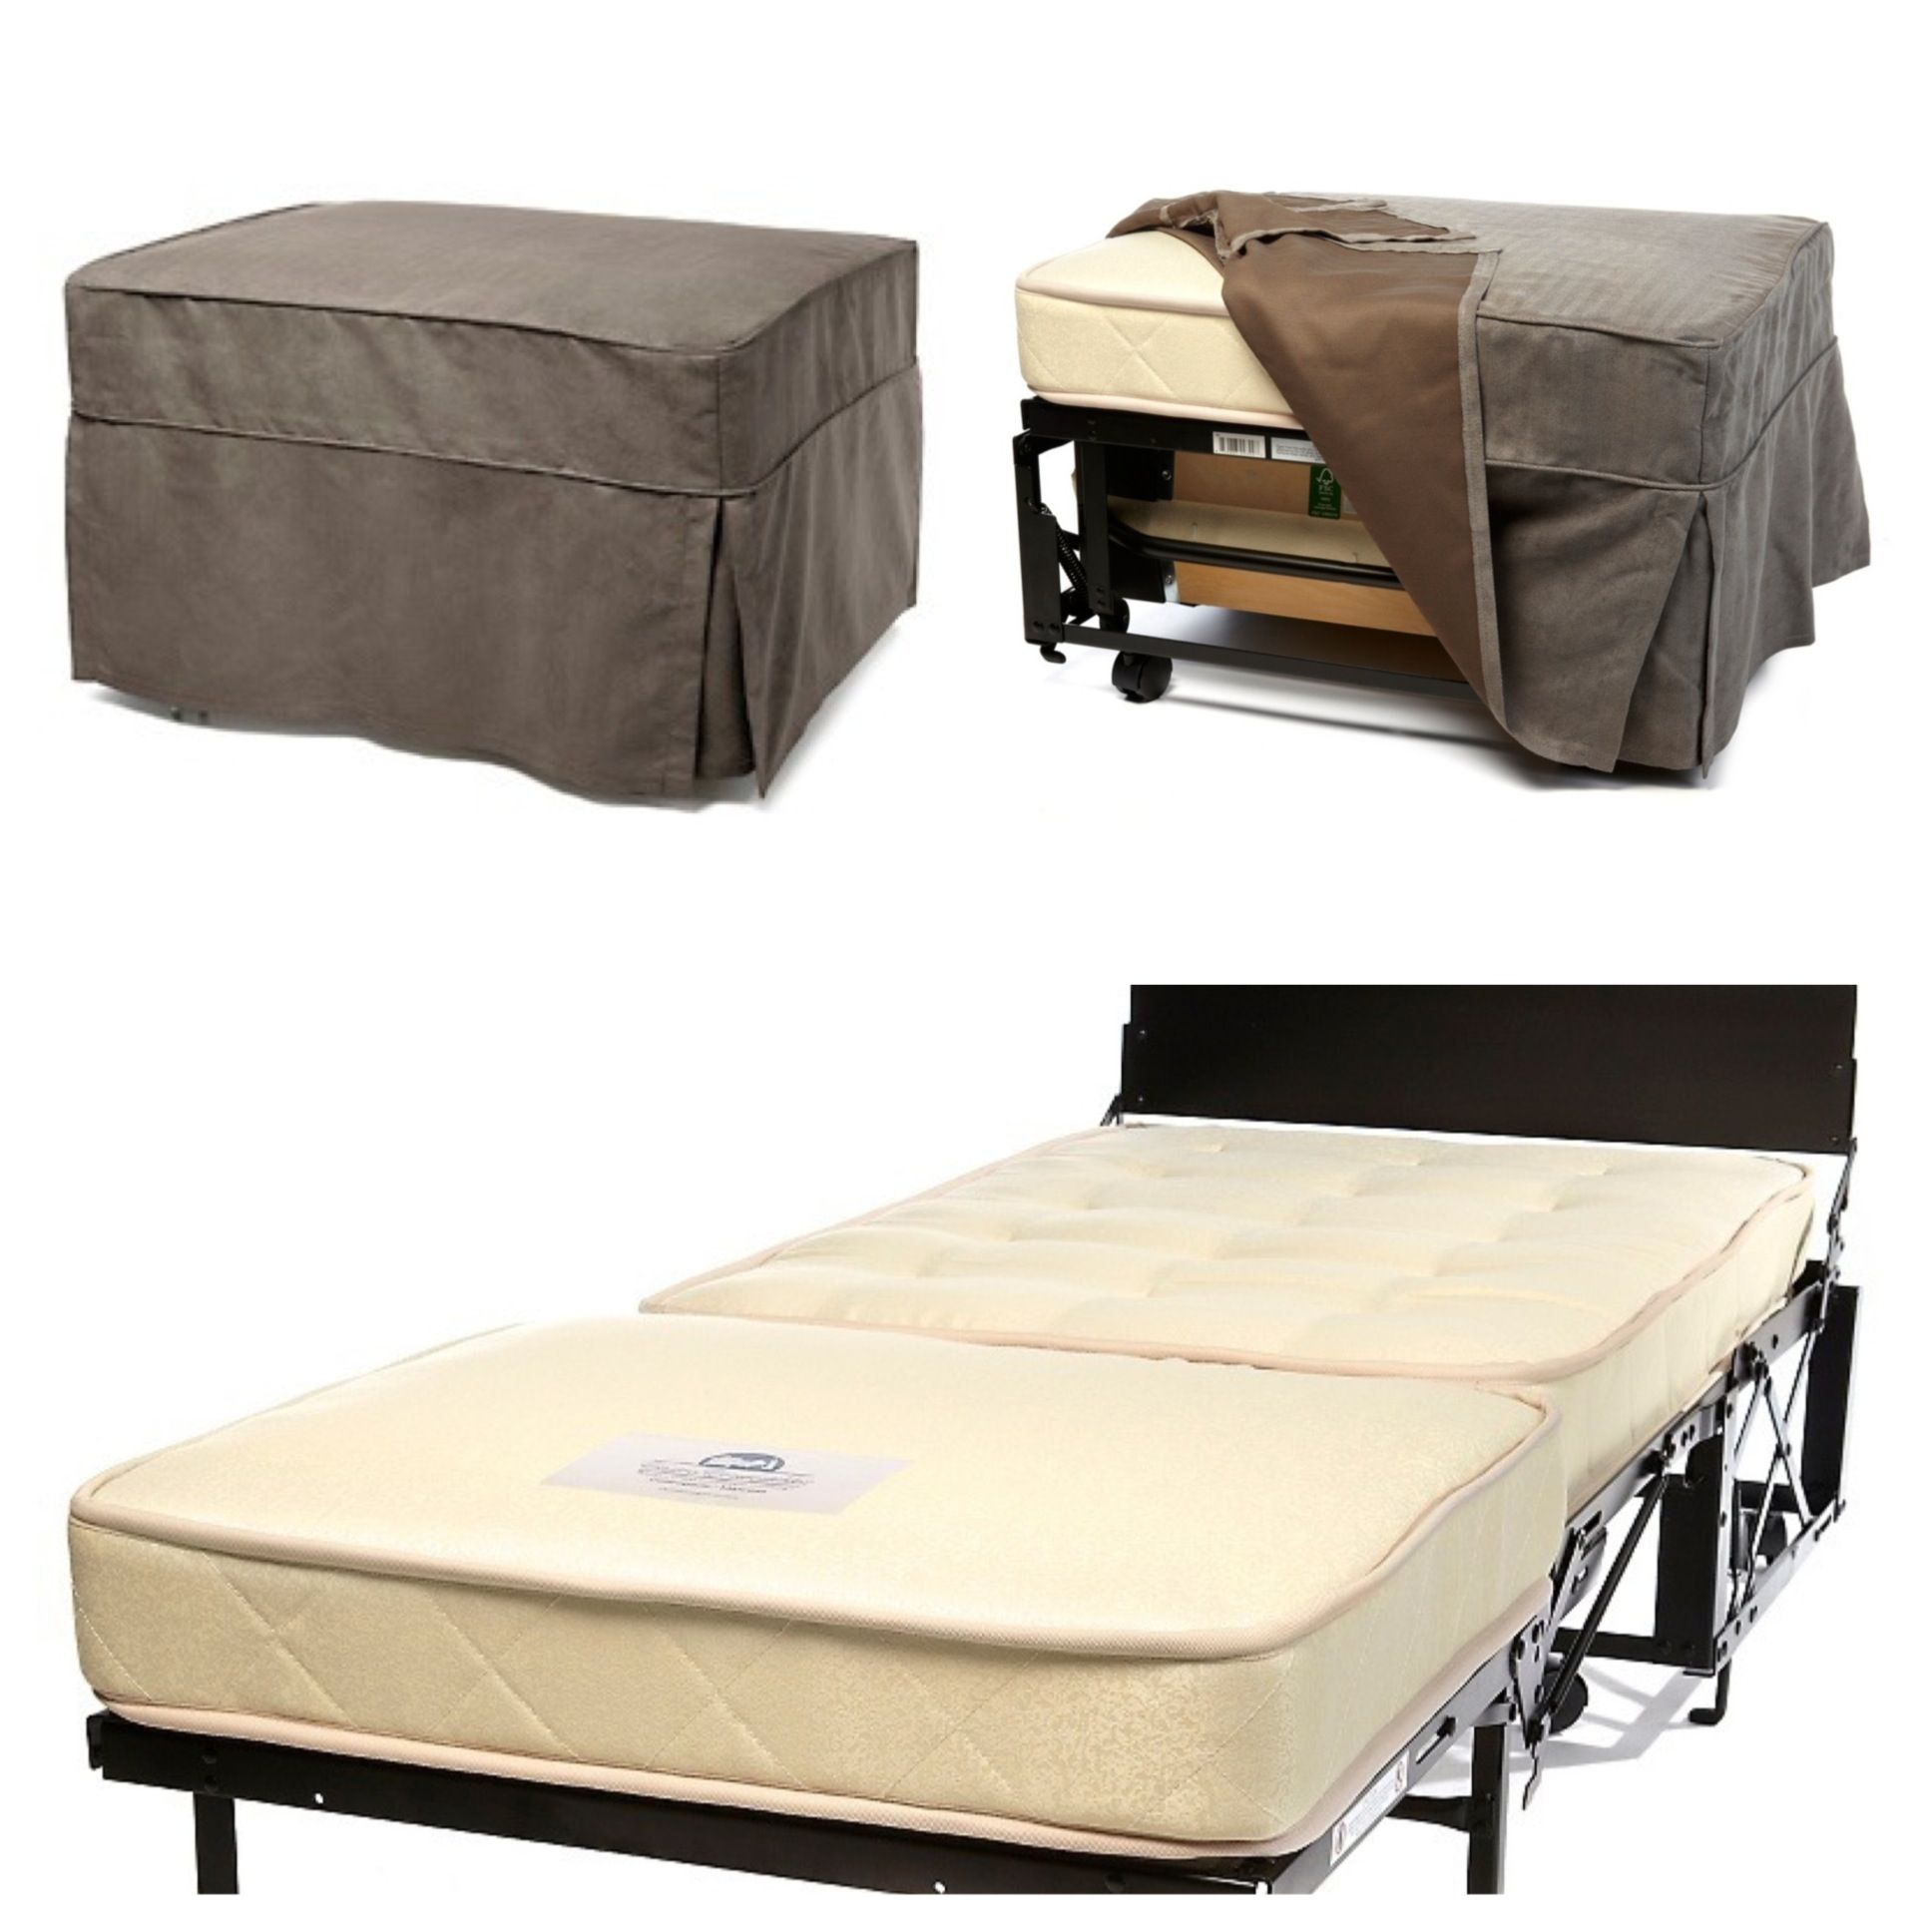 Castro Convertible Ottoman With Mattress I Love This Option For Extra Bedding In An Rv They 39 Re